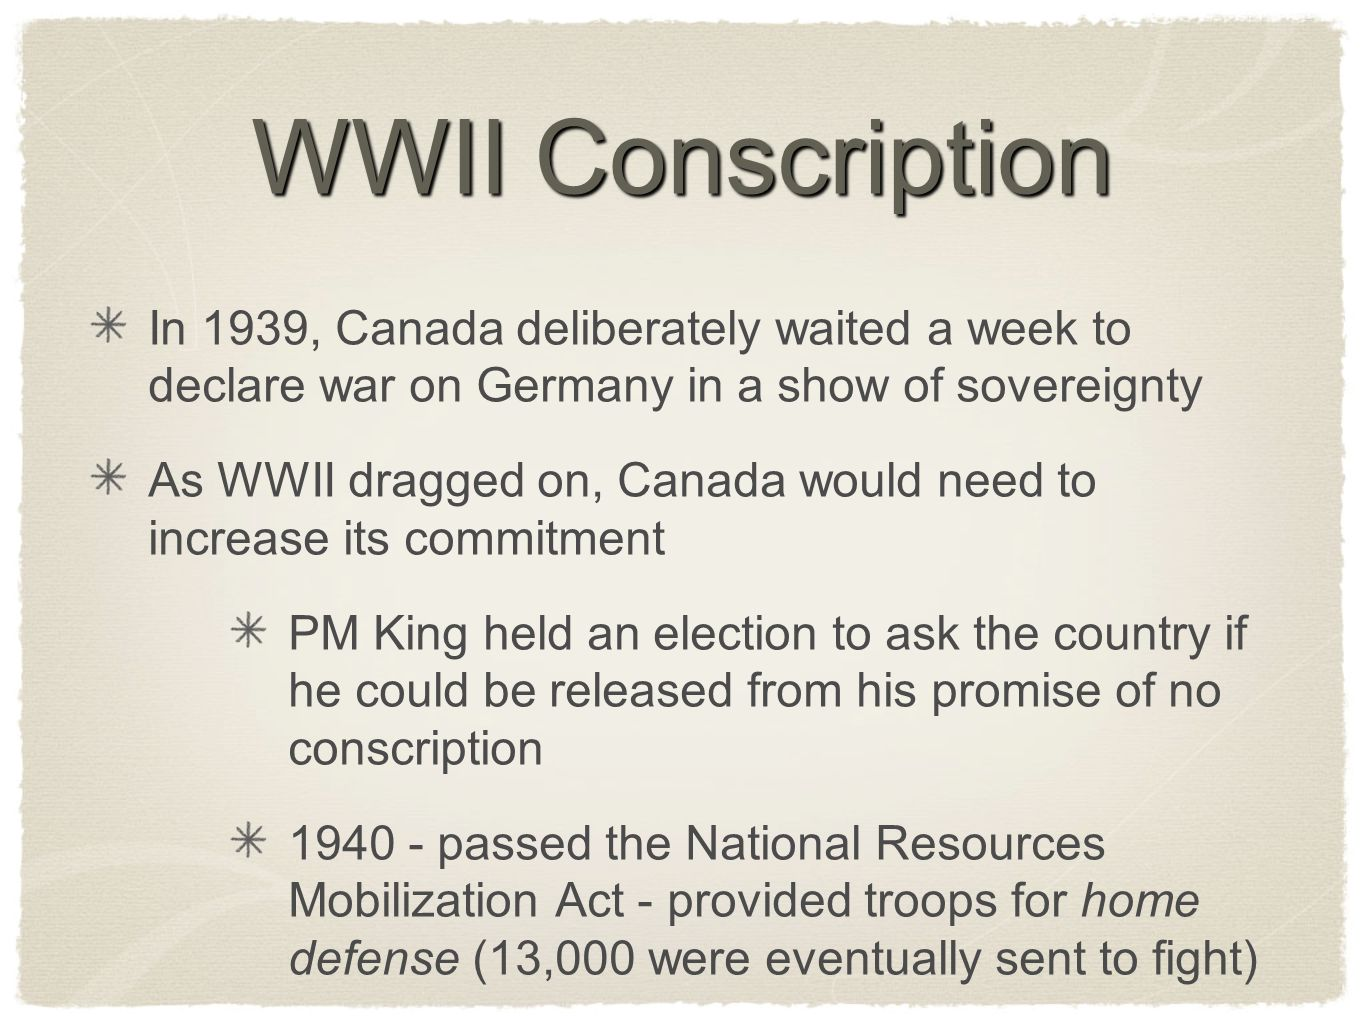 WWII Conscription In 1939, Canada deliberately waited a week to declare war on Germany in a show of sovereignty As WWII dragged on, Canada would need